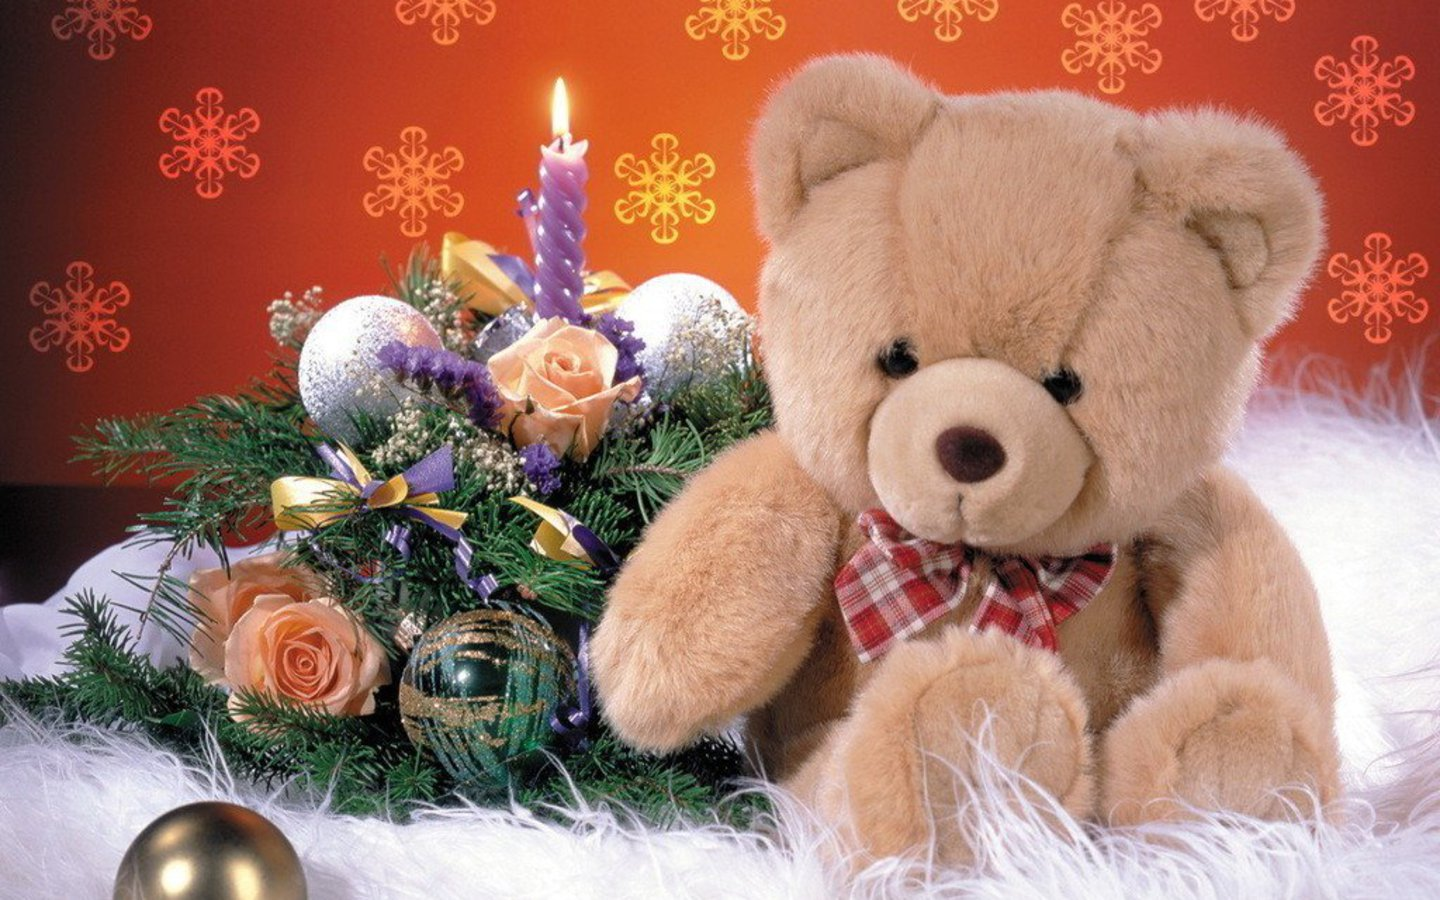 Cute Love Animations Wallpapers Teddy Bears Teddy Bear V Amp Wallpapers